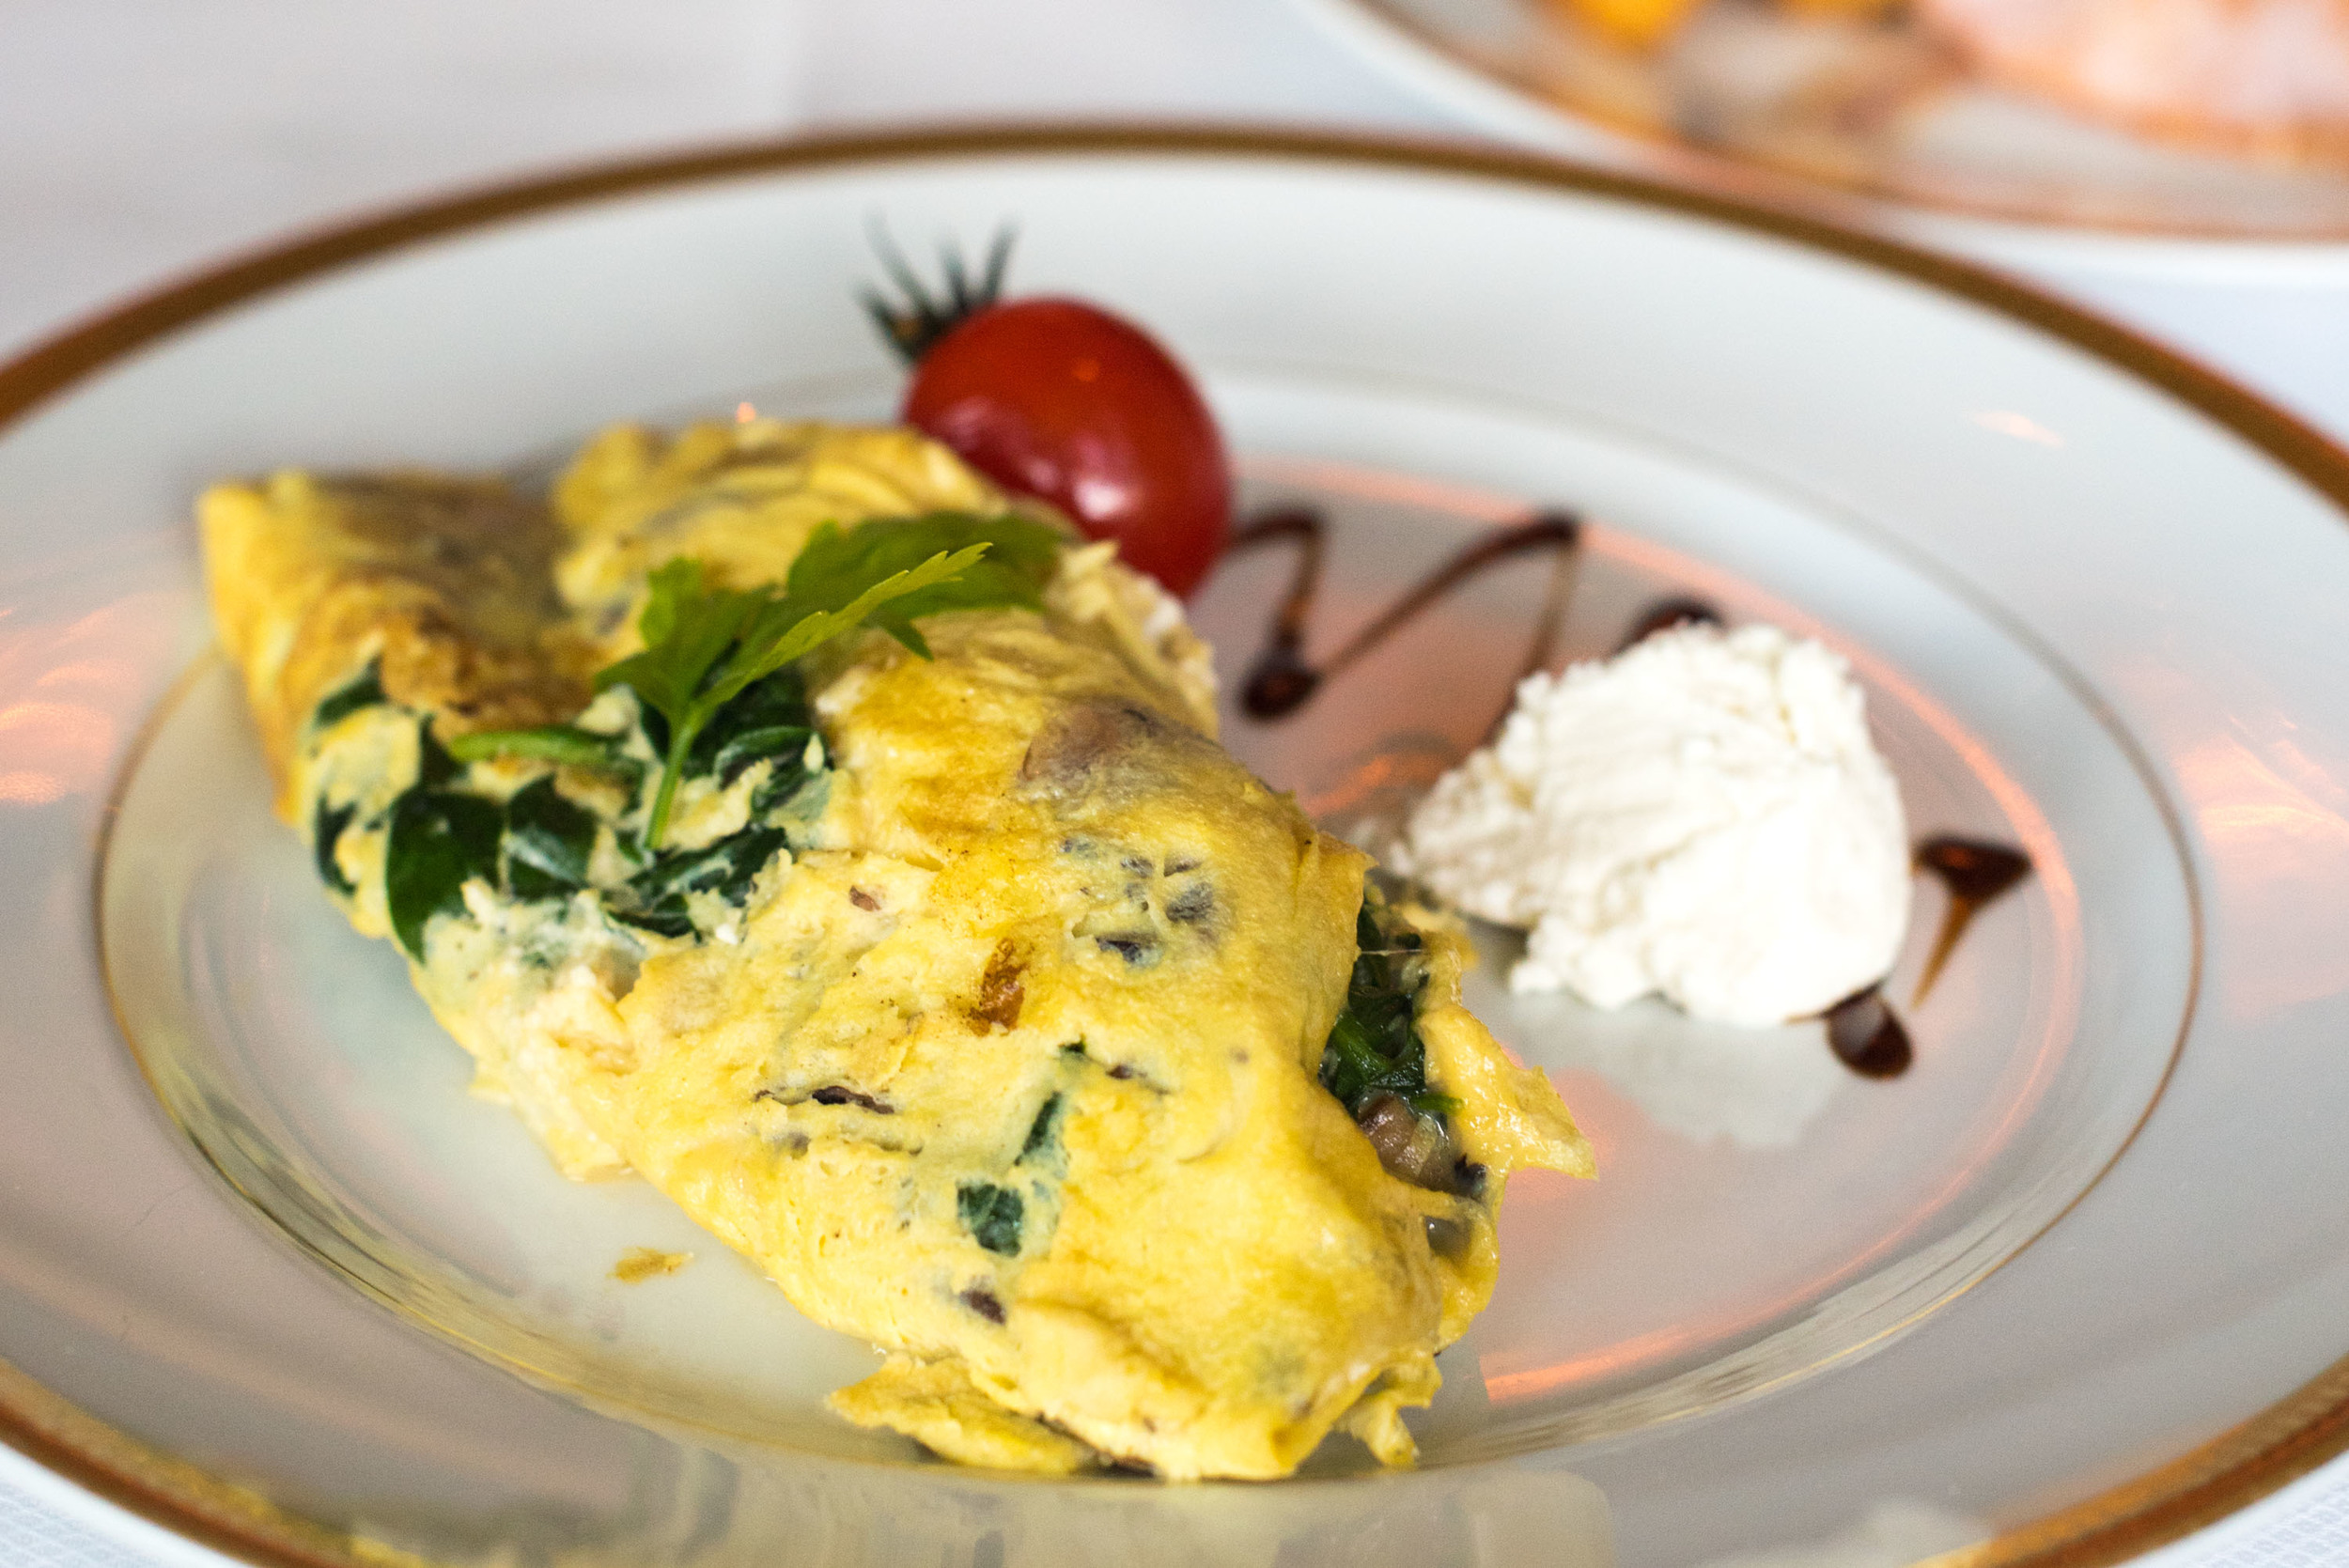 Char-grilled Mushroom, Ricotta and Spinach Omelette - Breakfast  Valley Wing - Shangri-La Hotel, Singapore